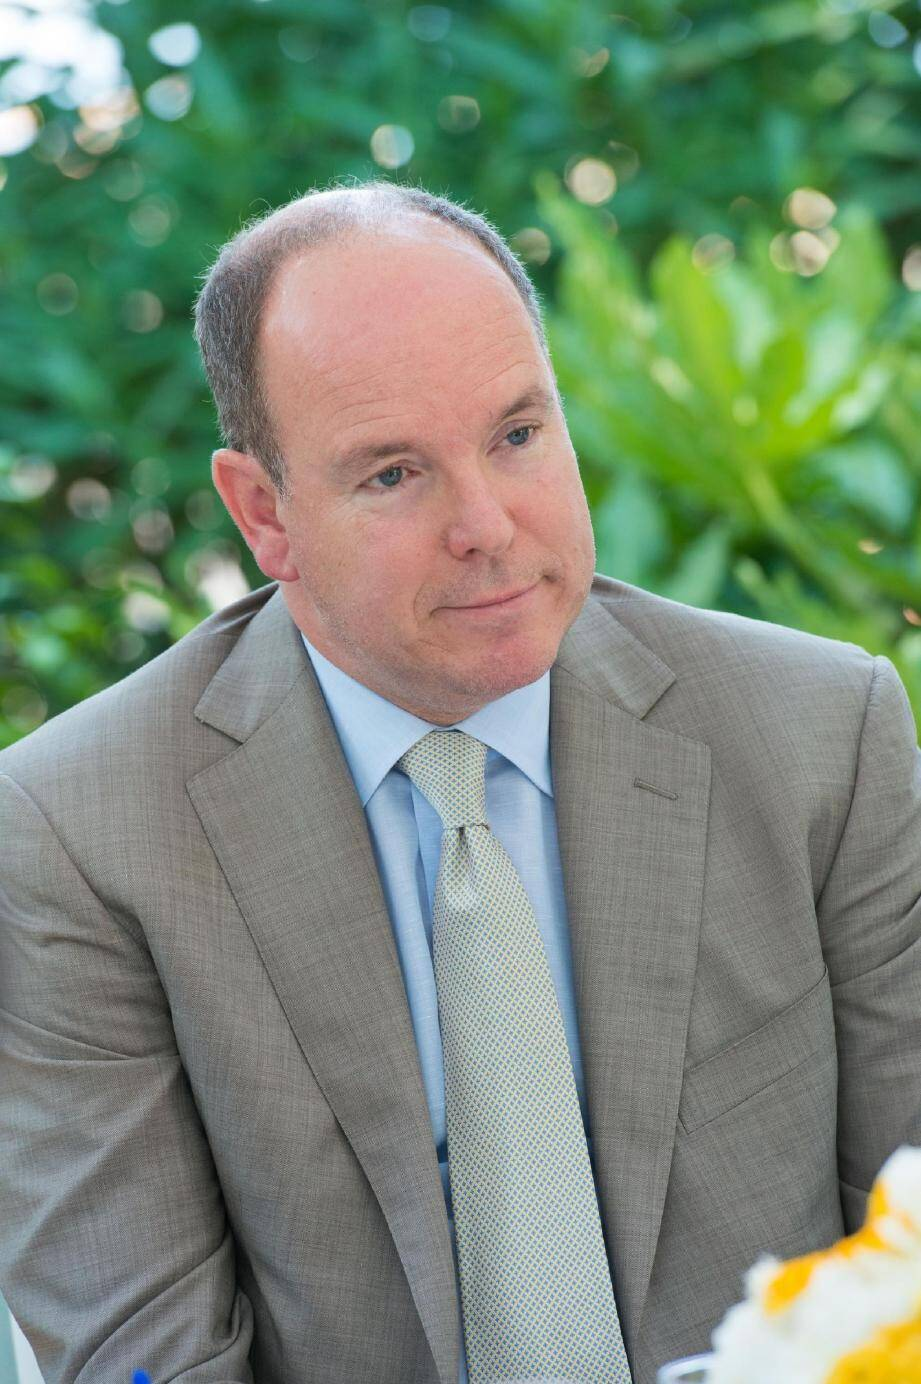 Le prince Albert II a confirmé l'augmentation de capital de la SBM.